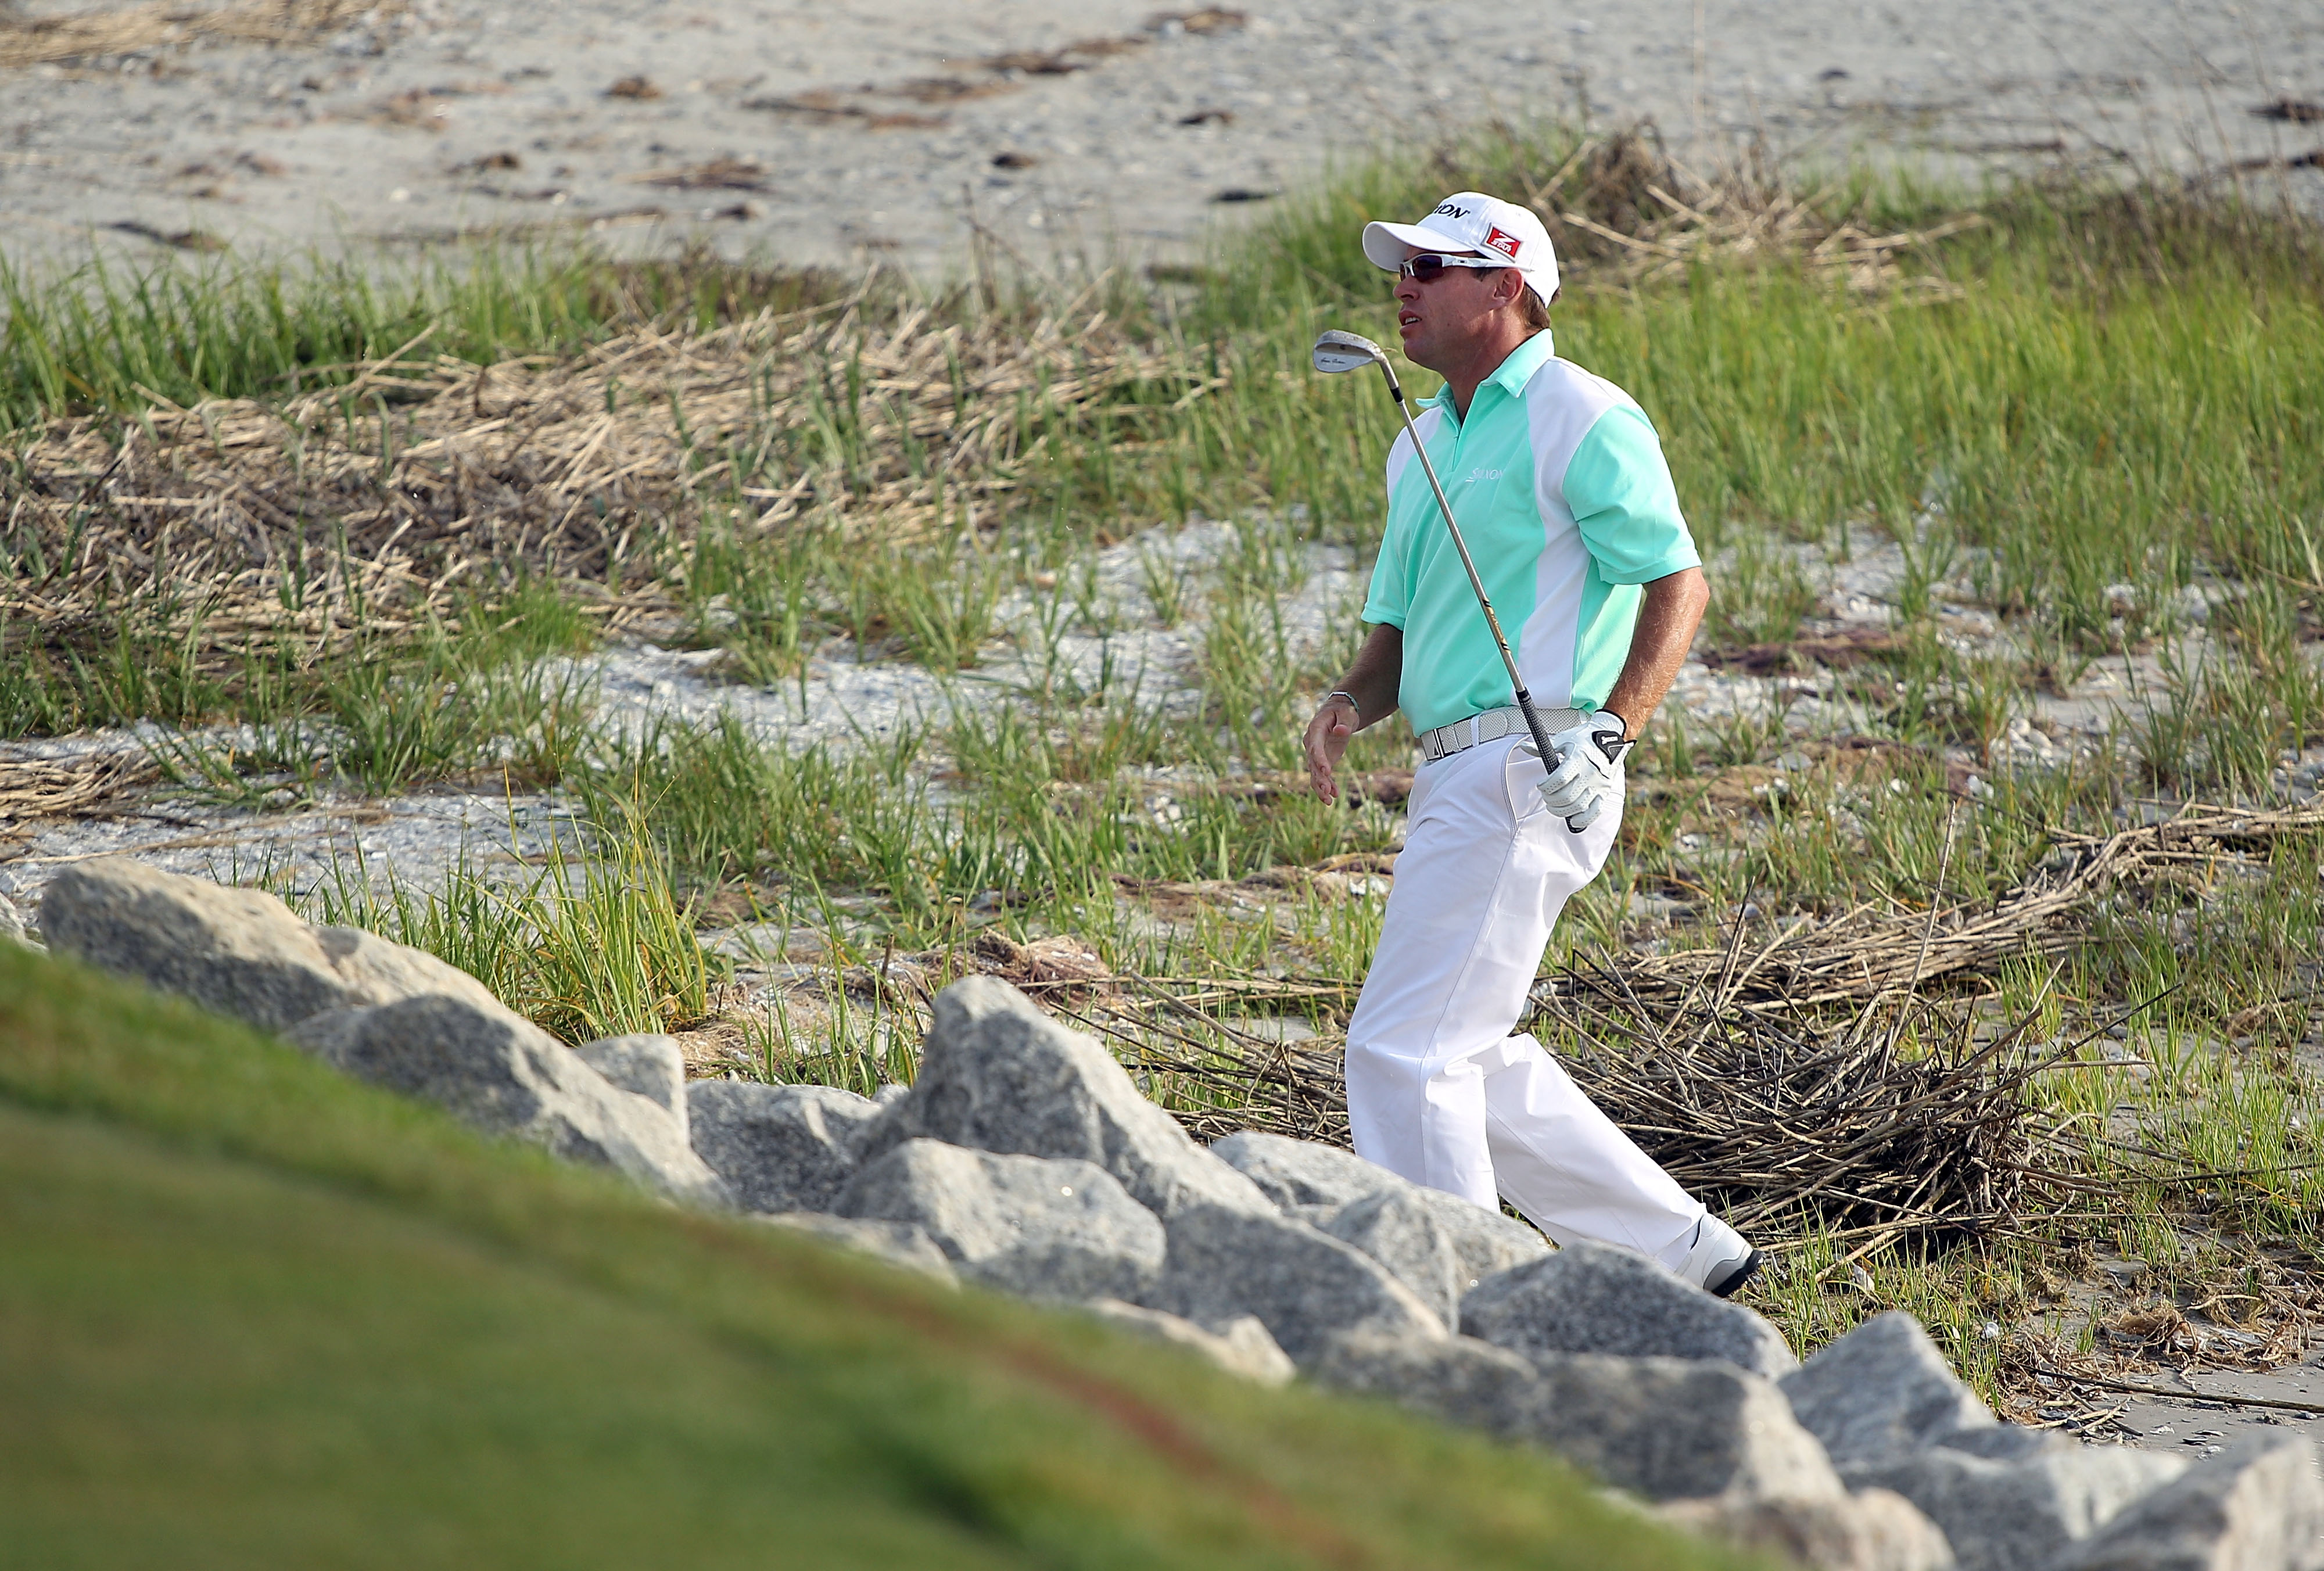 HILTON HEAD ISLAND, SC - APRIL 18:  Brian Davis of England plays a shot from the beach on the first playoff hole during the final round of the Verizon Heritage at the Harbour Town Golf Links on April 18, 2010 in Hilton Head lsland, South Carolina.  (Photo